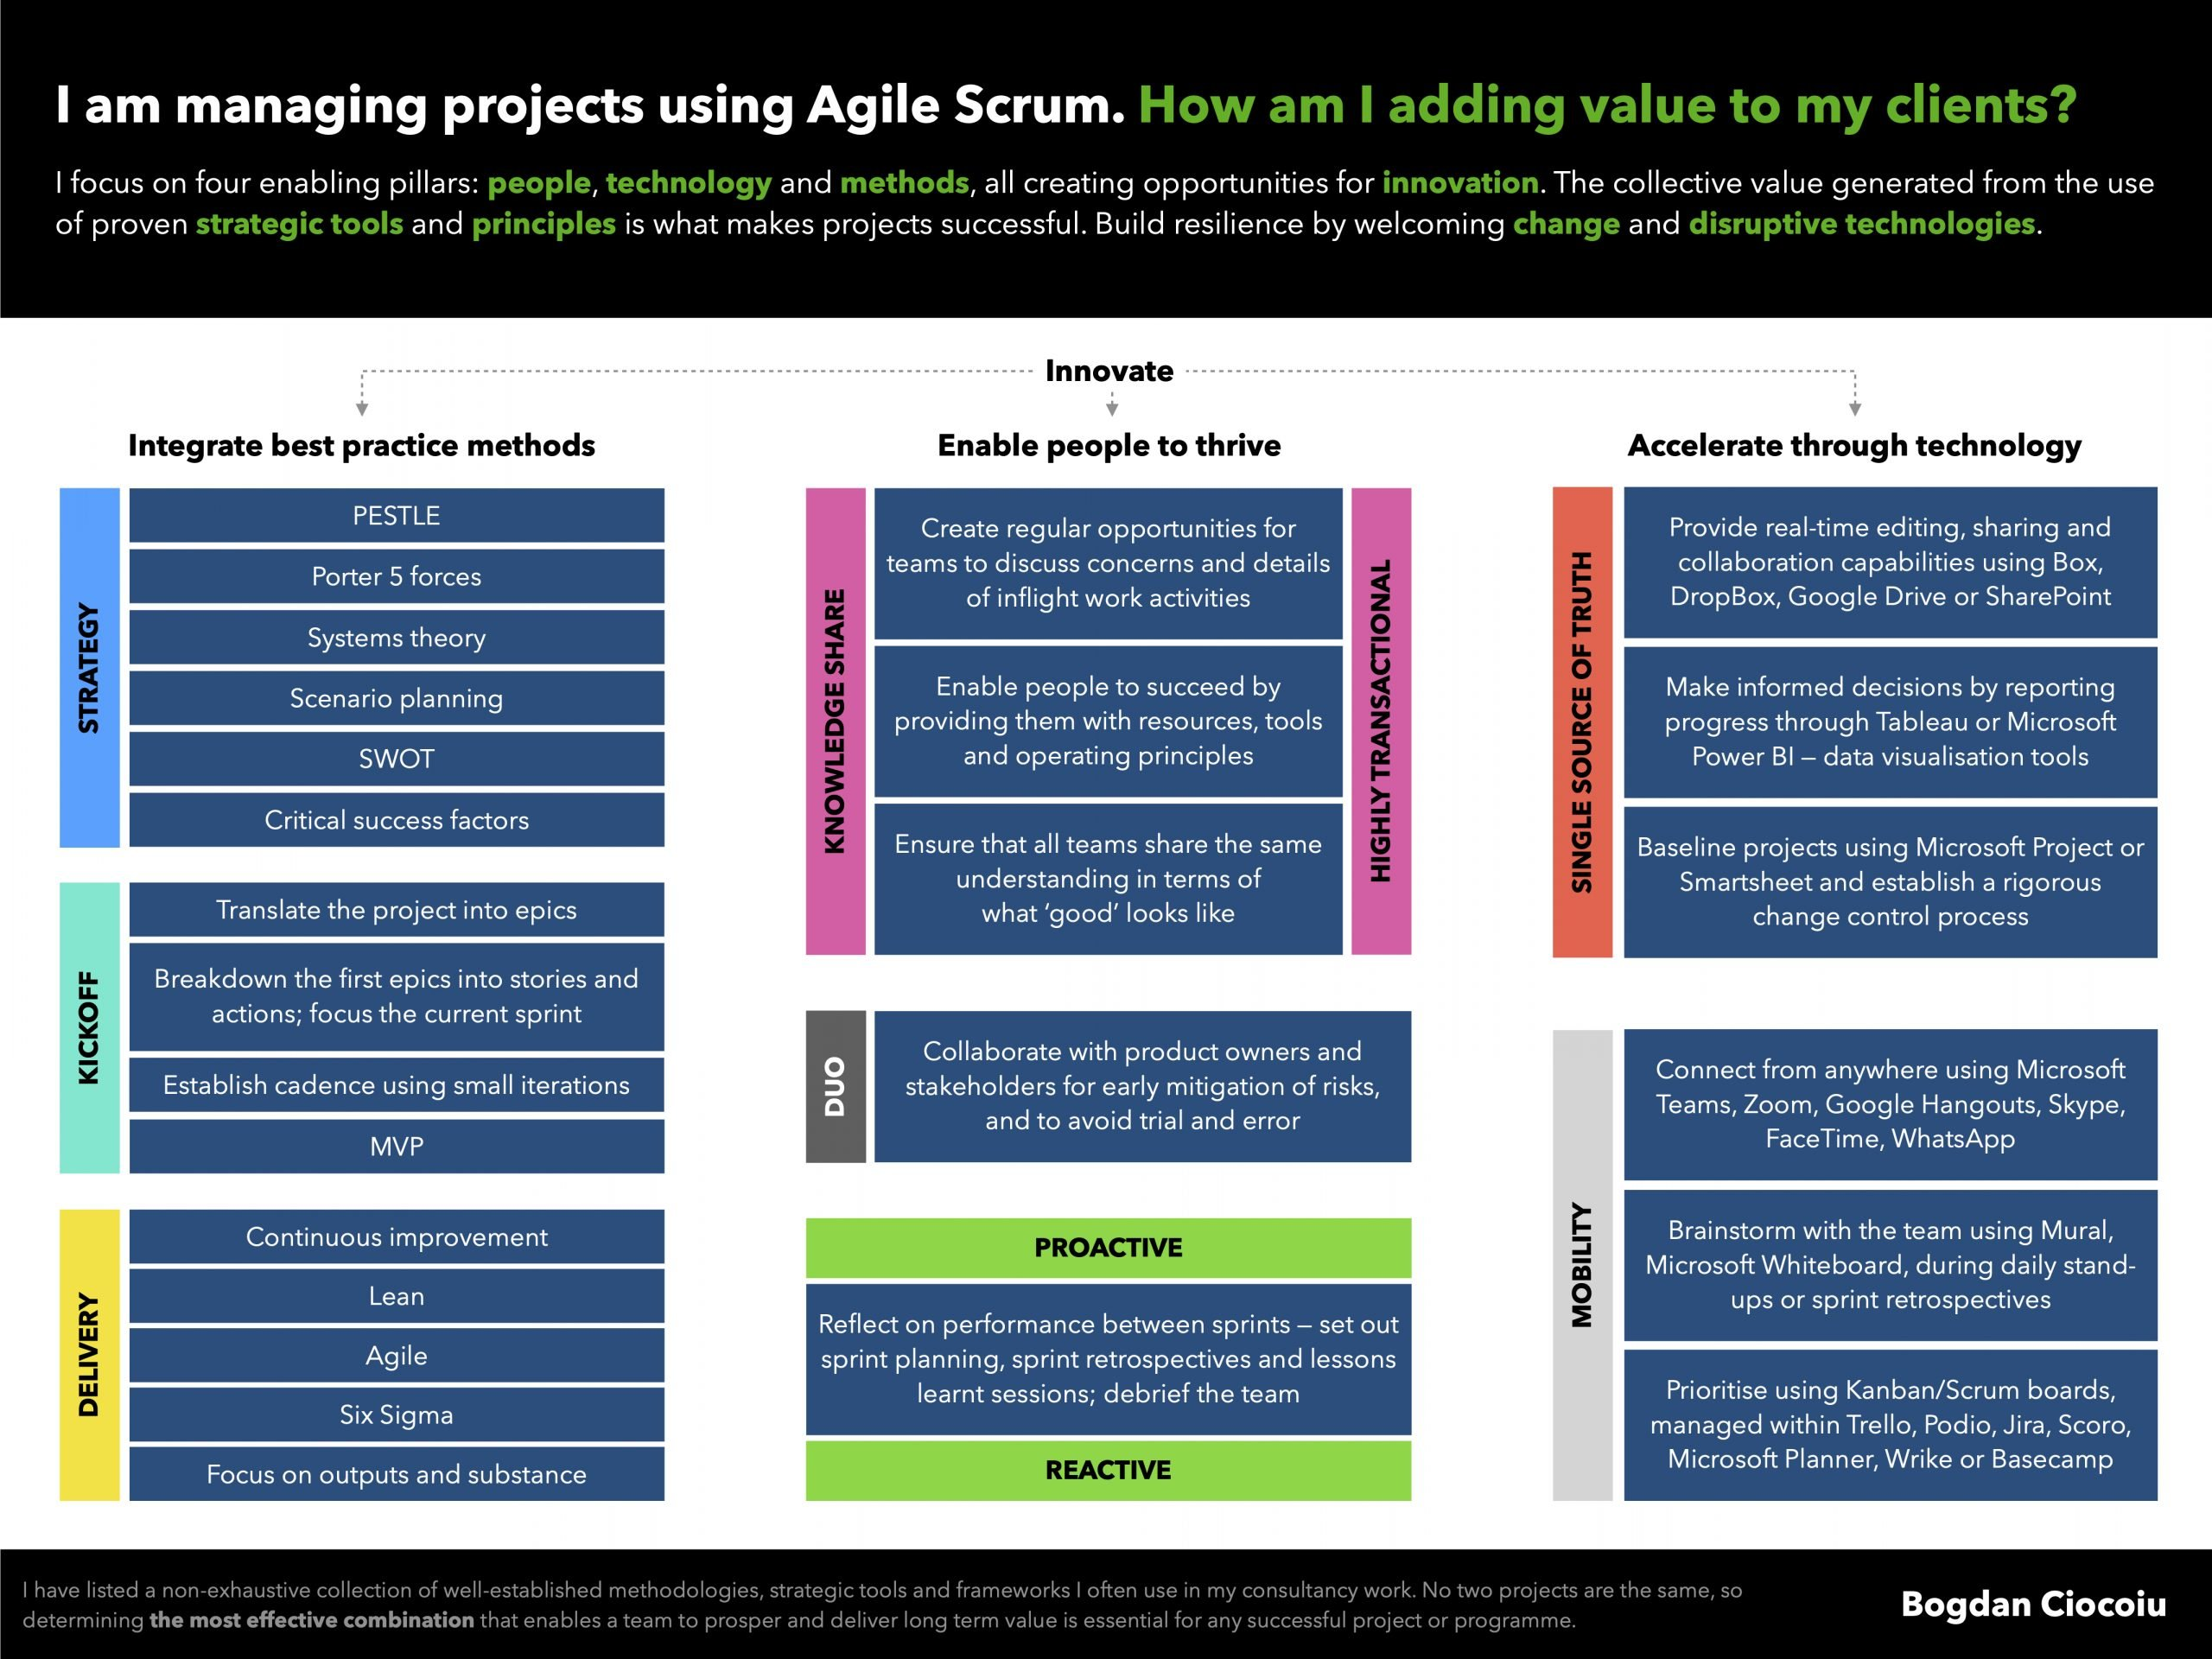 Agile Scrum, enabling tools and methodologies - Bogdan Ciocoiu